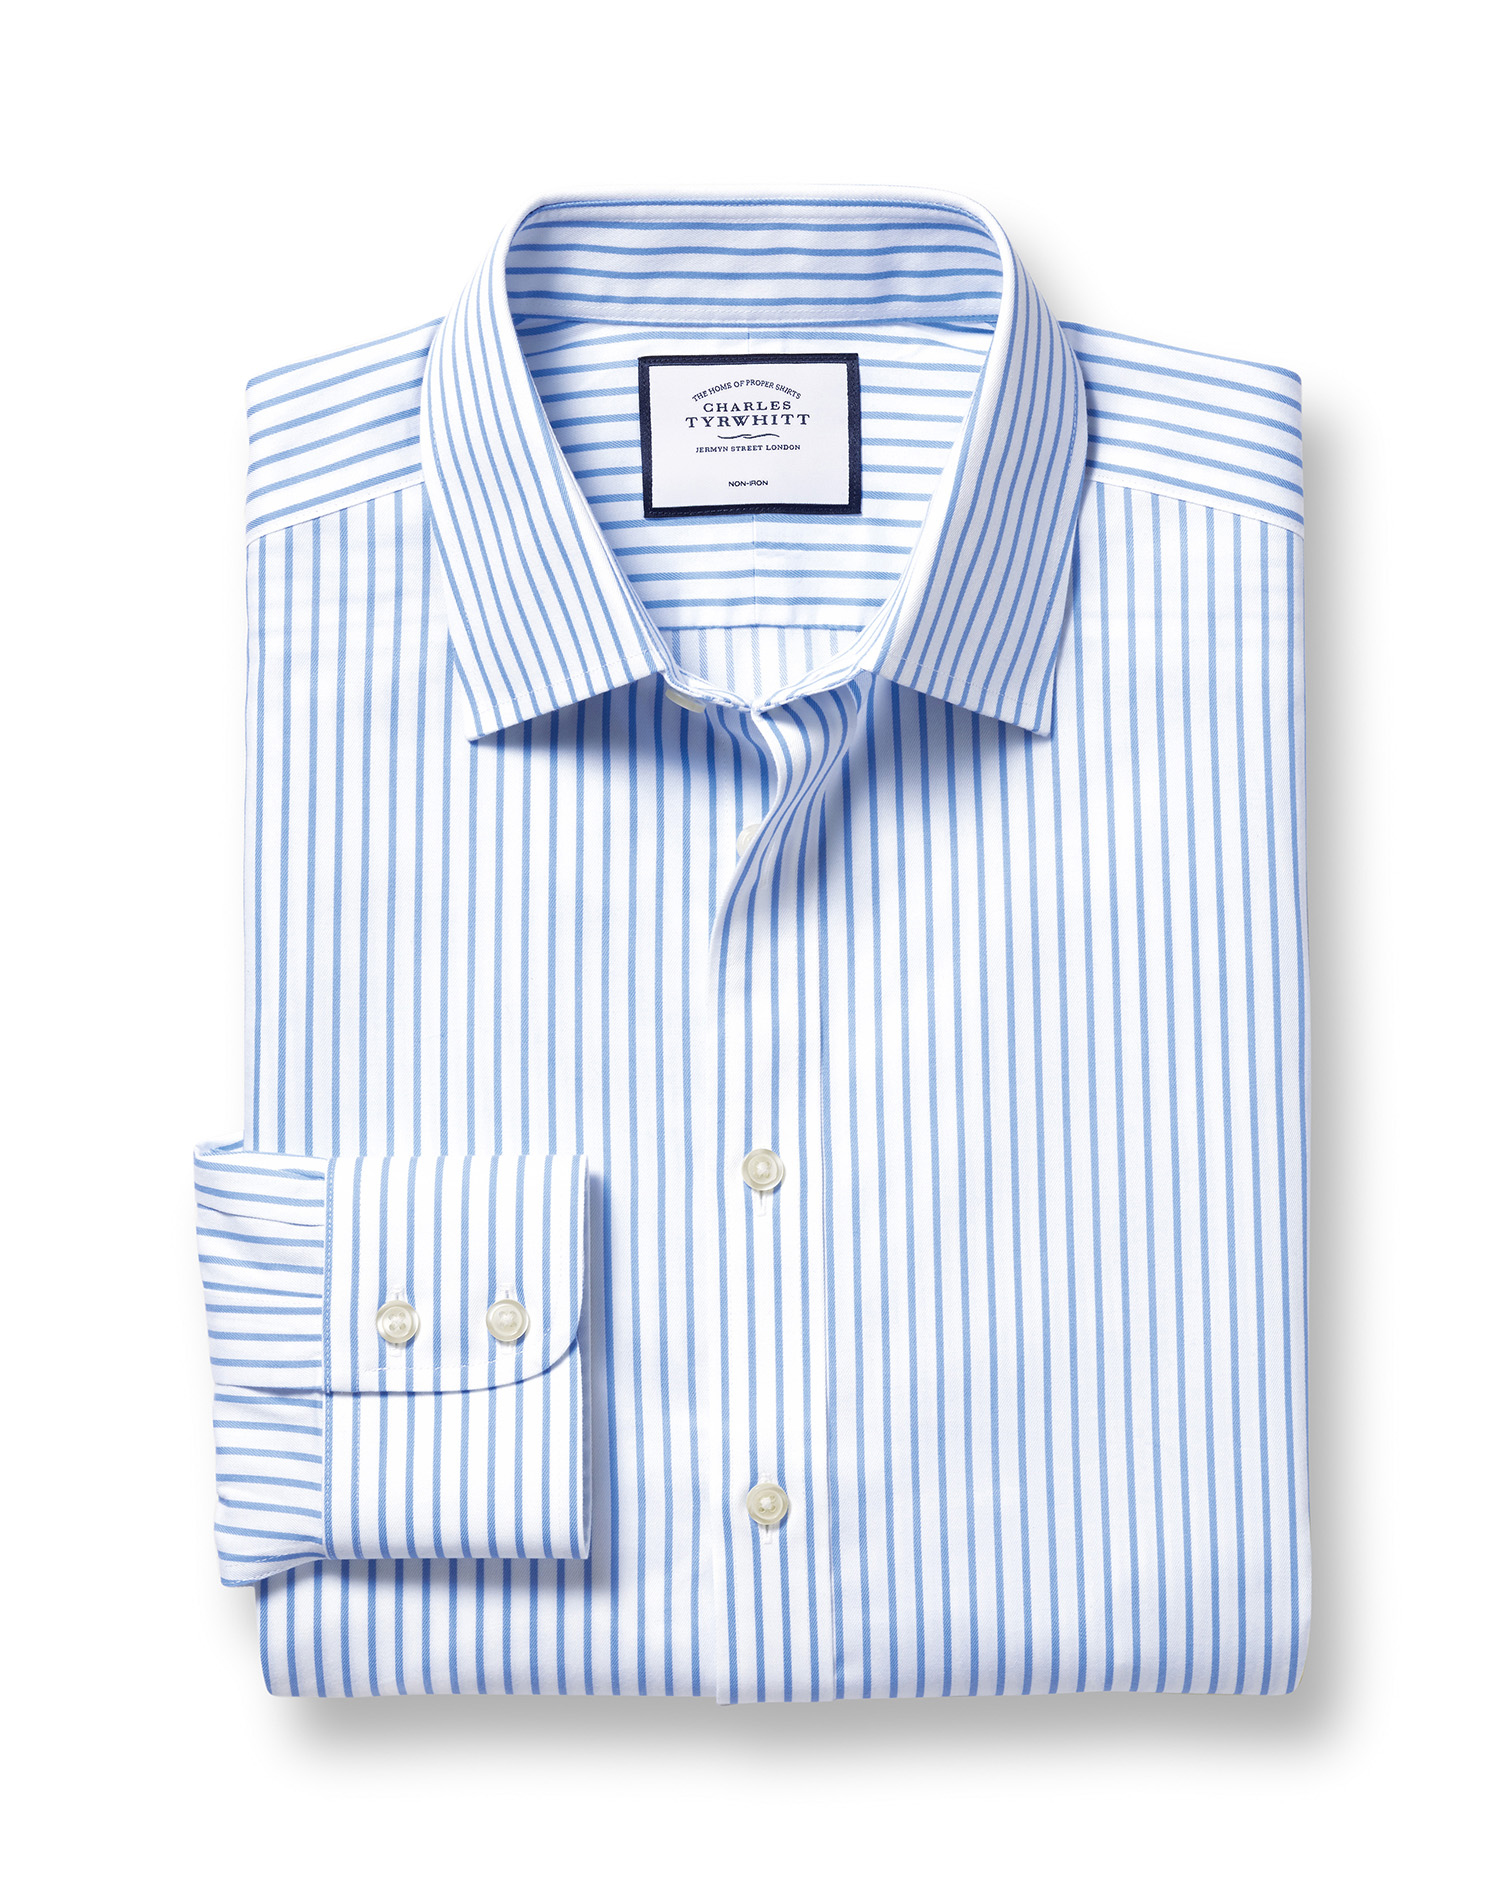 Slim Fit Non-Iron Twill White and Sky Blue Stripe Cotton Formal Shirt Double Cuff Size 17.5/36 by Ch